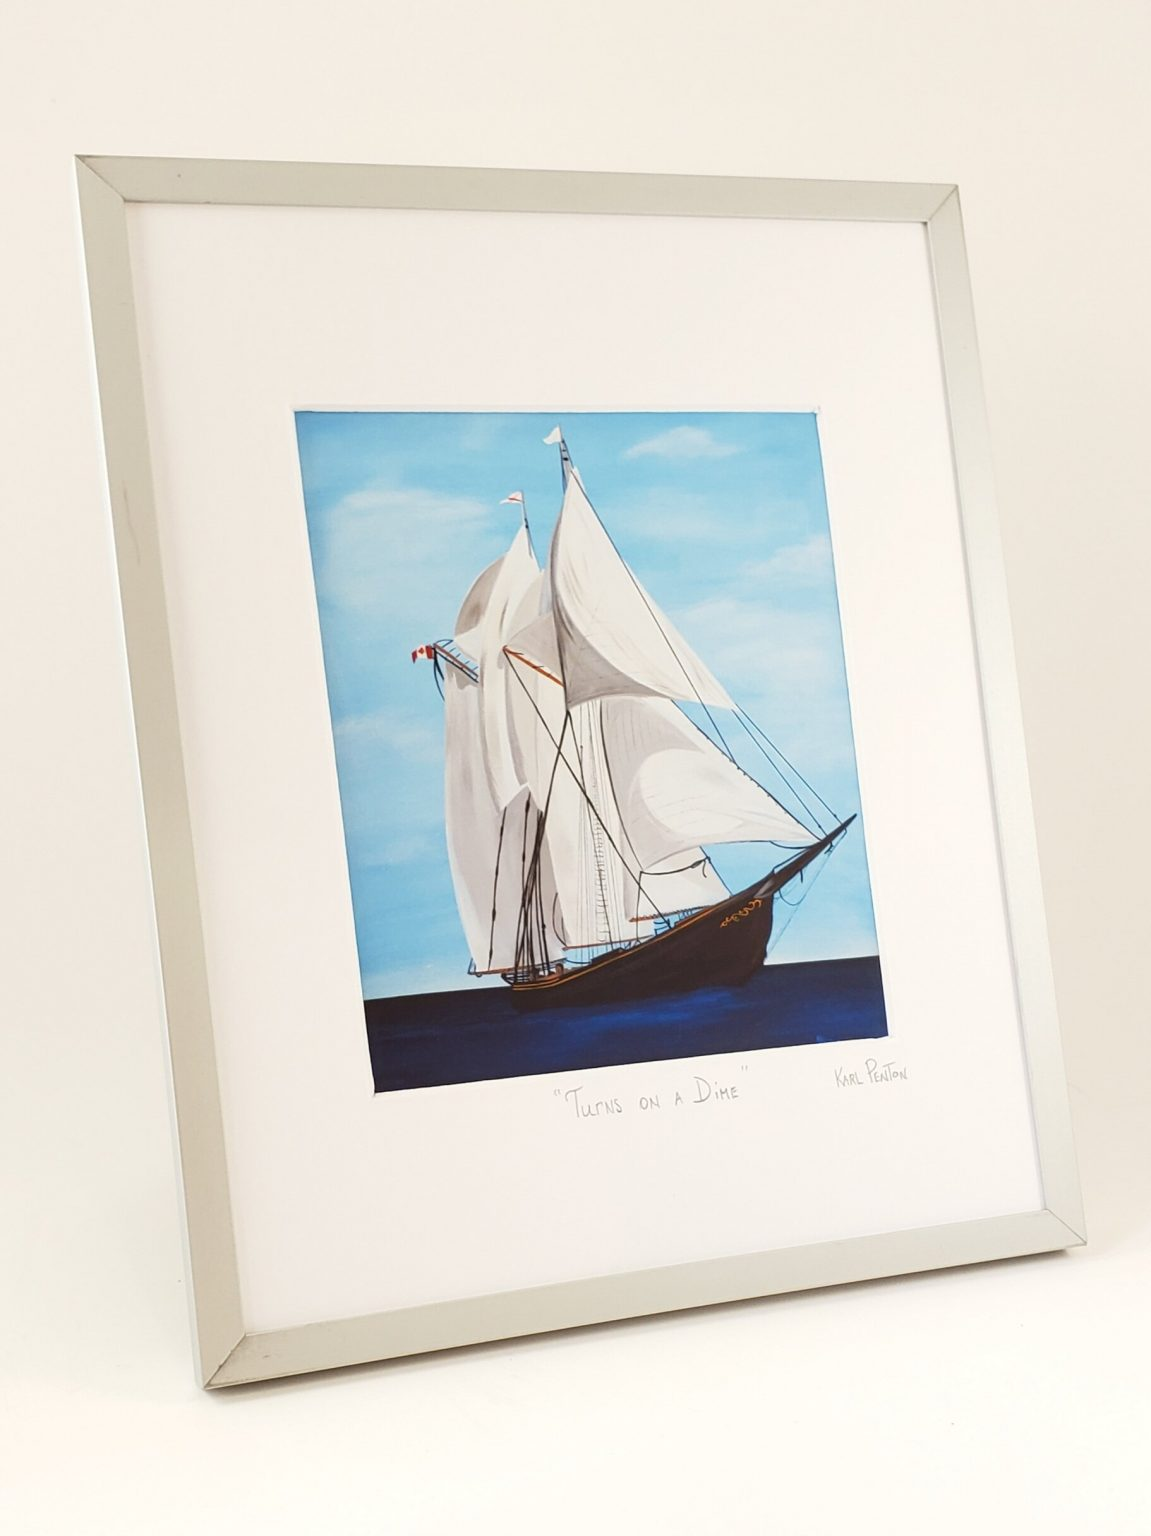 Turns on a Dime framed print by Karl Penton